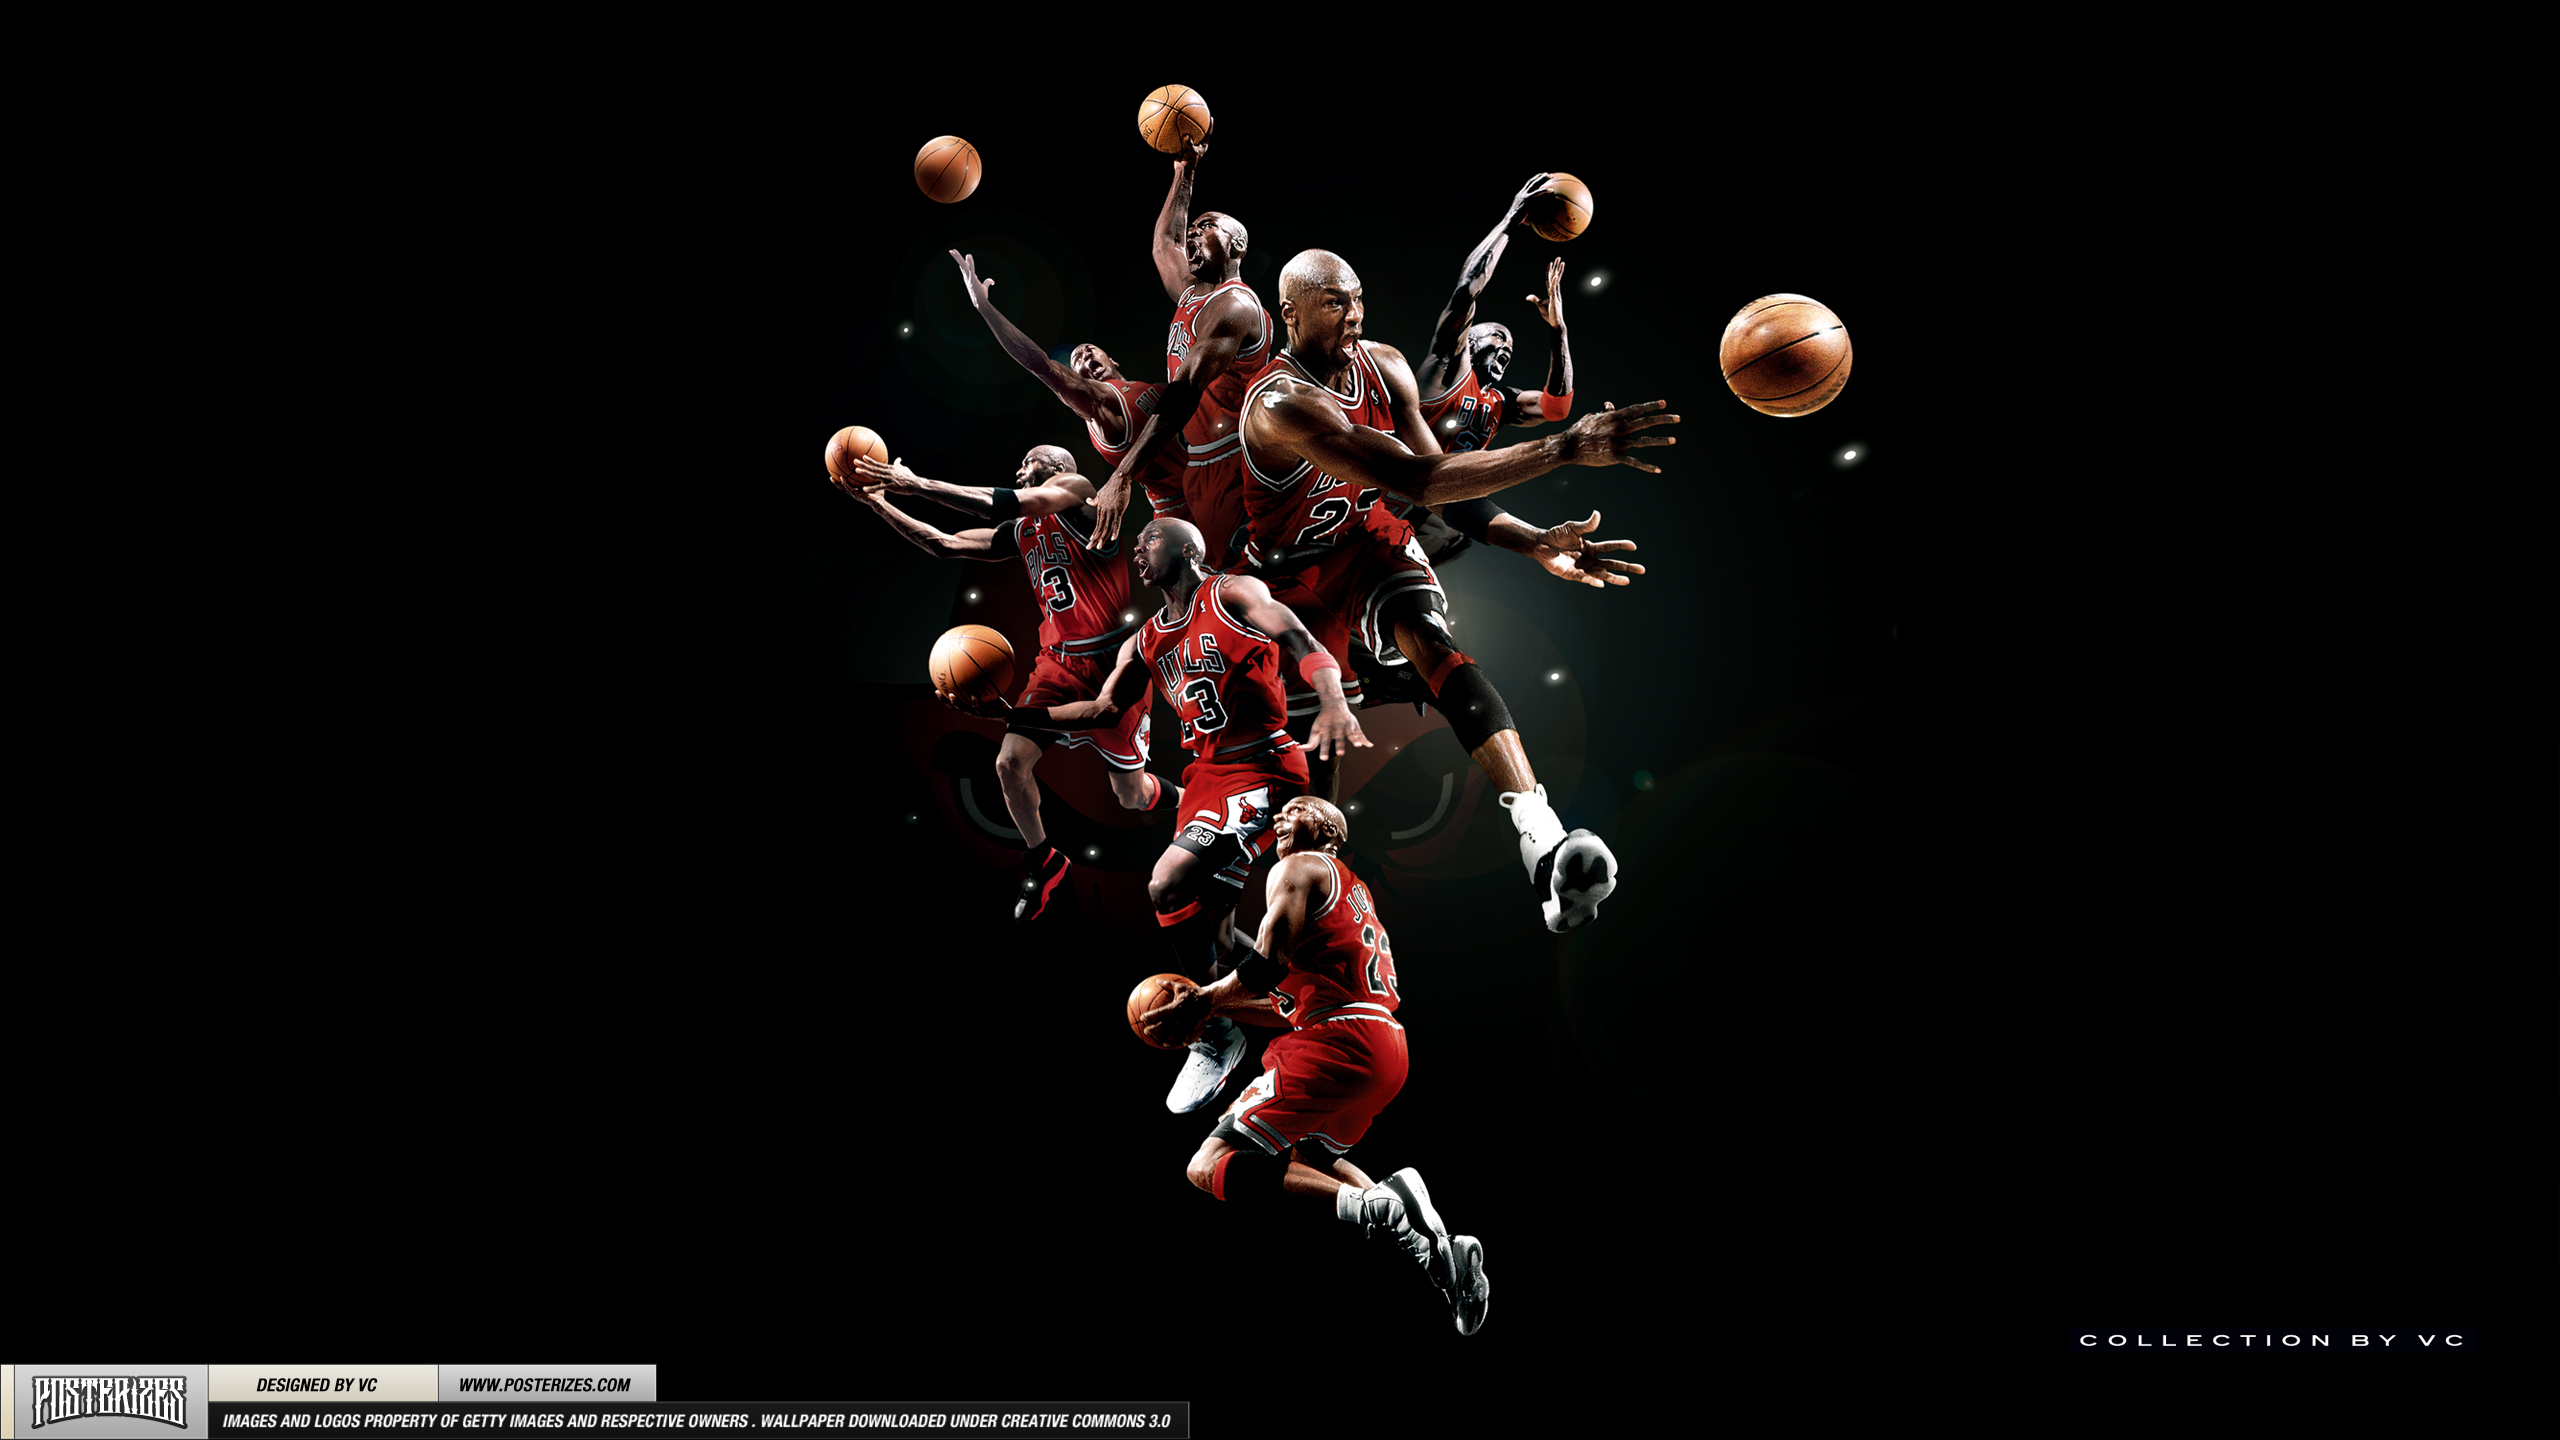 Michael Jordan Wallpaper HD